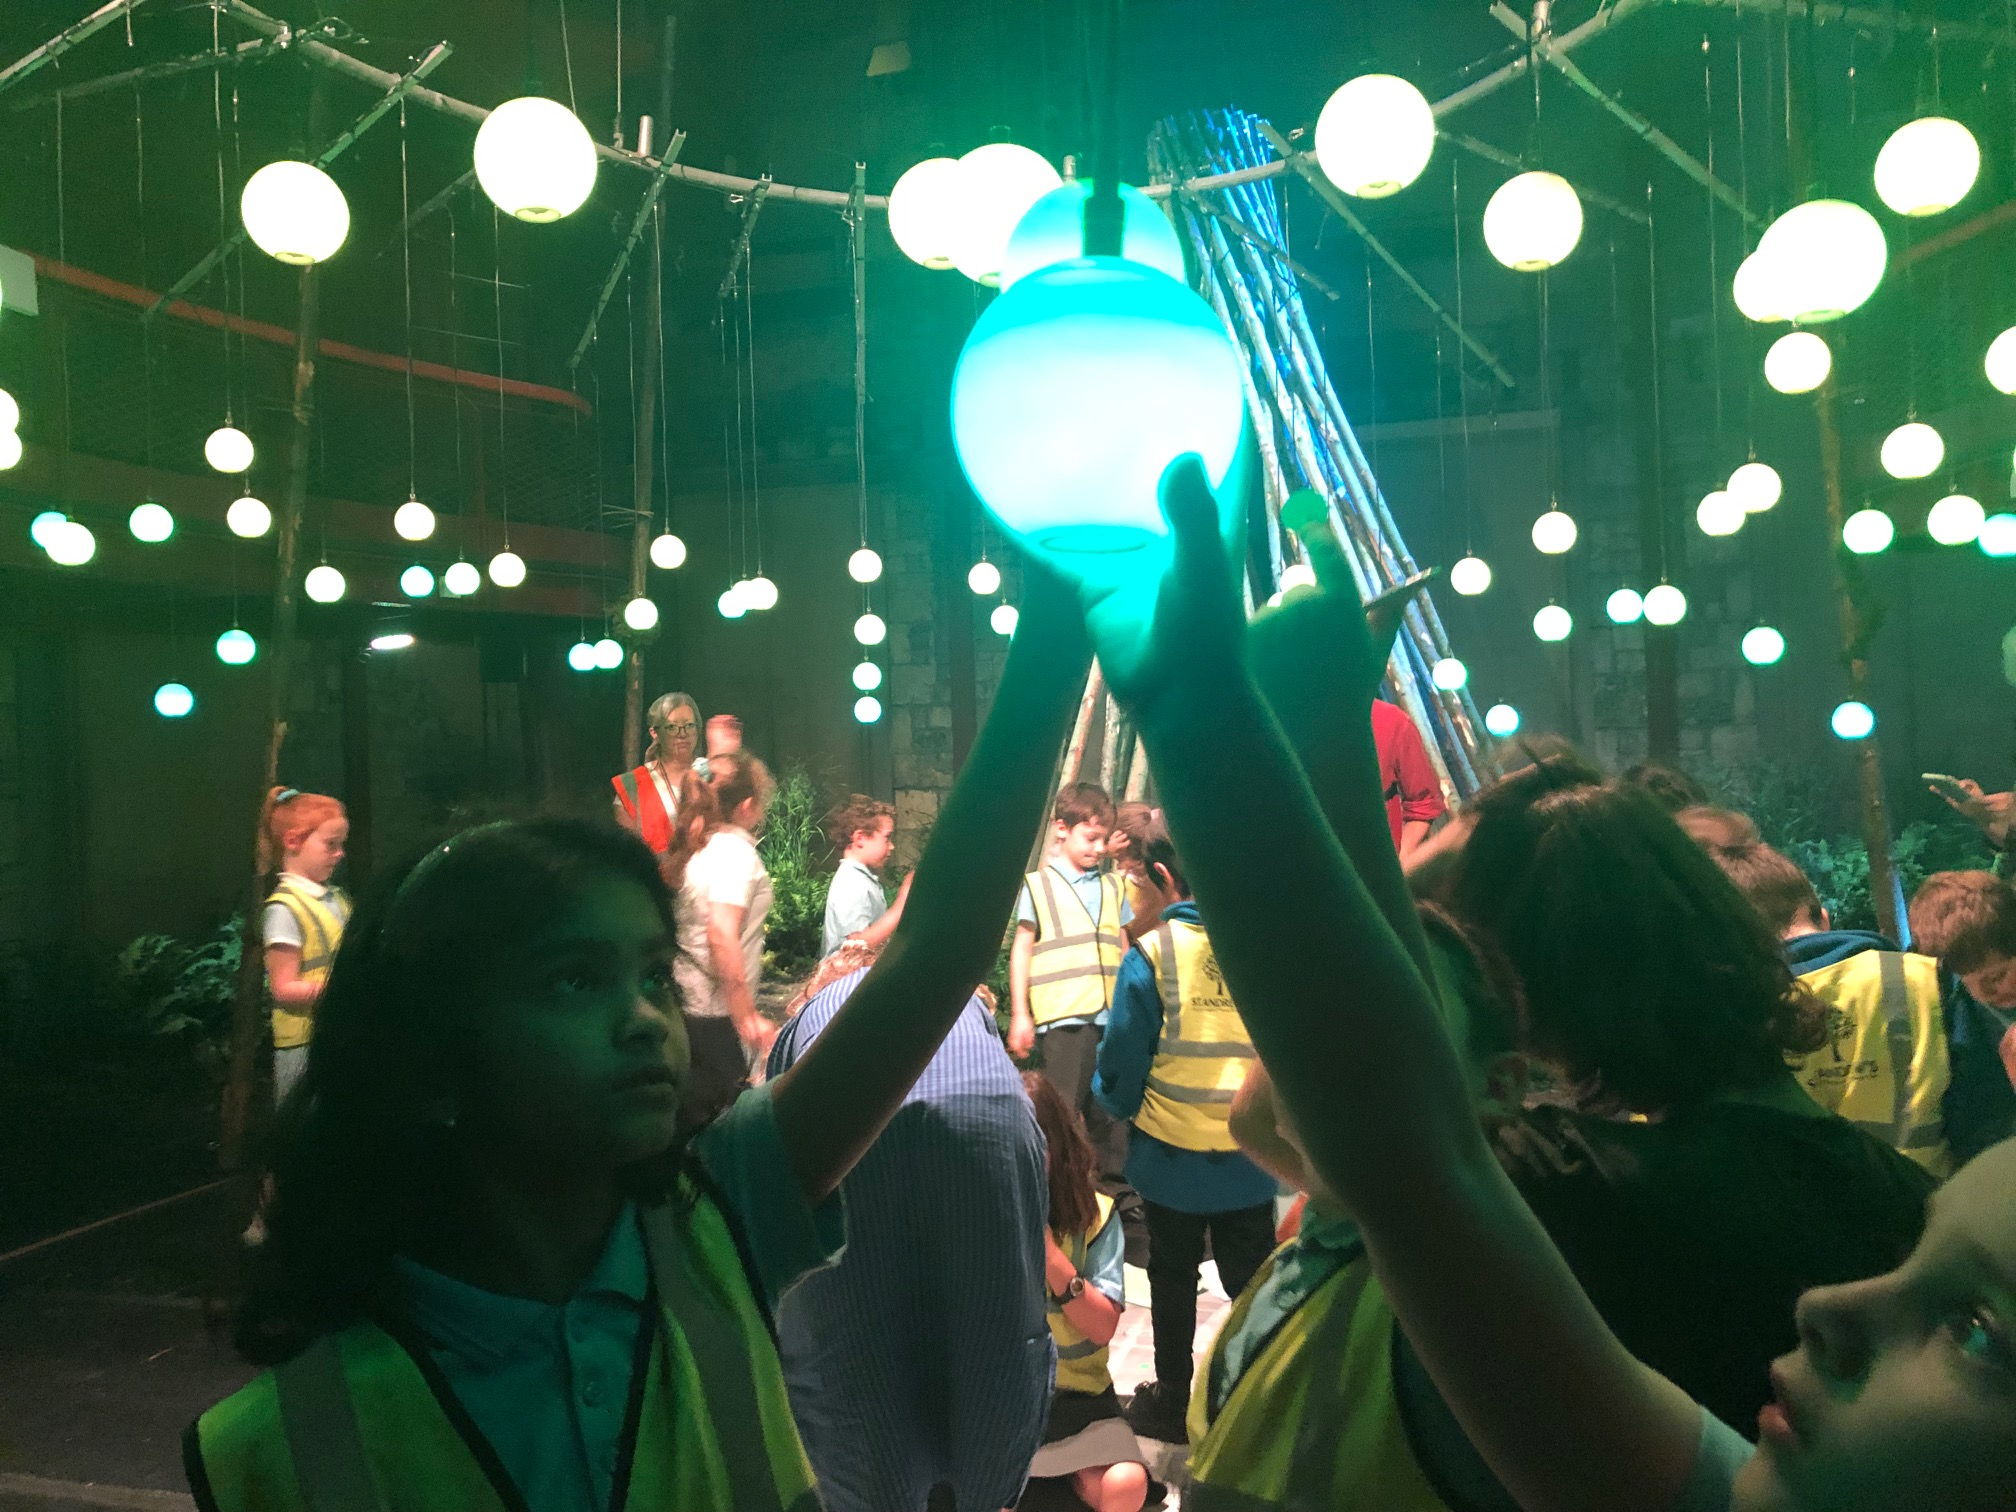 Year 3 visit the Egg to explore a Forest of Imagination & Egg collaboration: The Living Tree